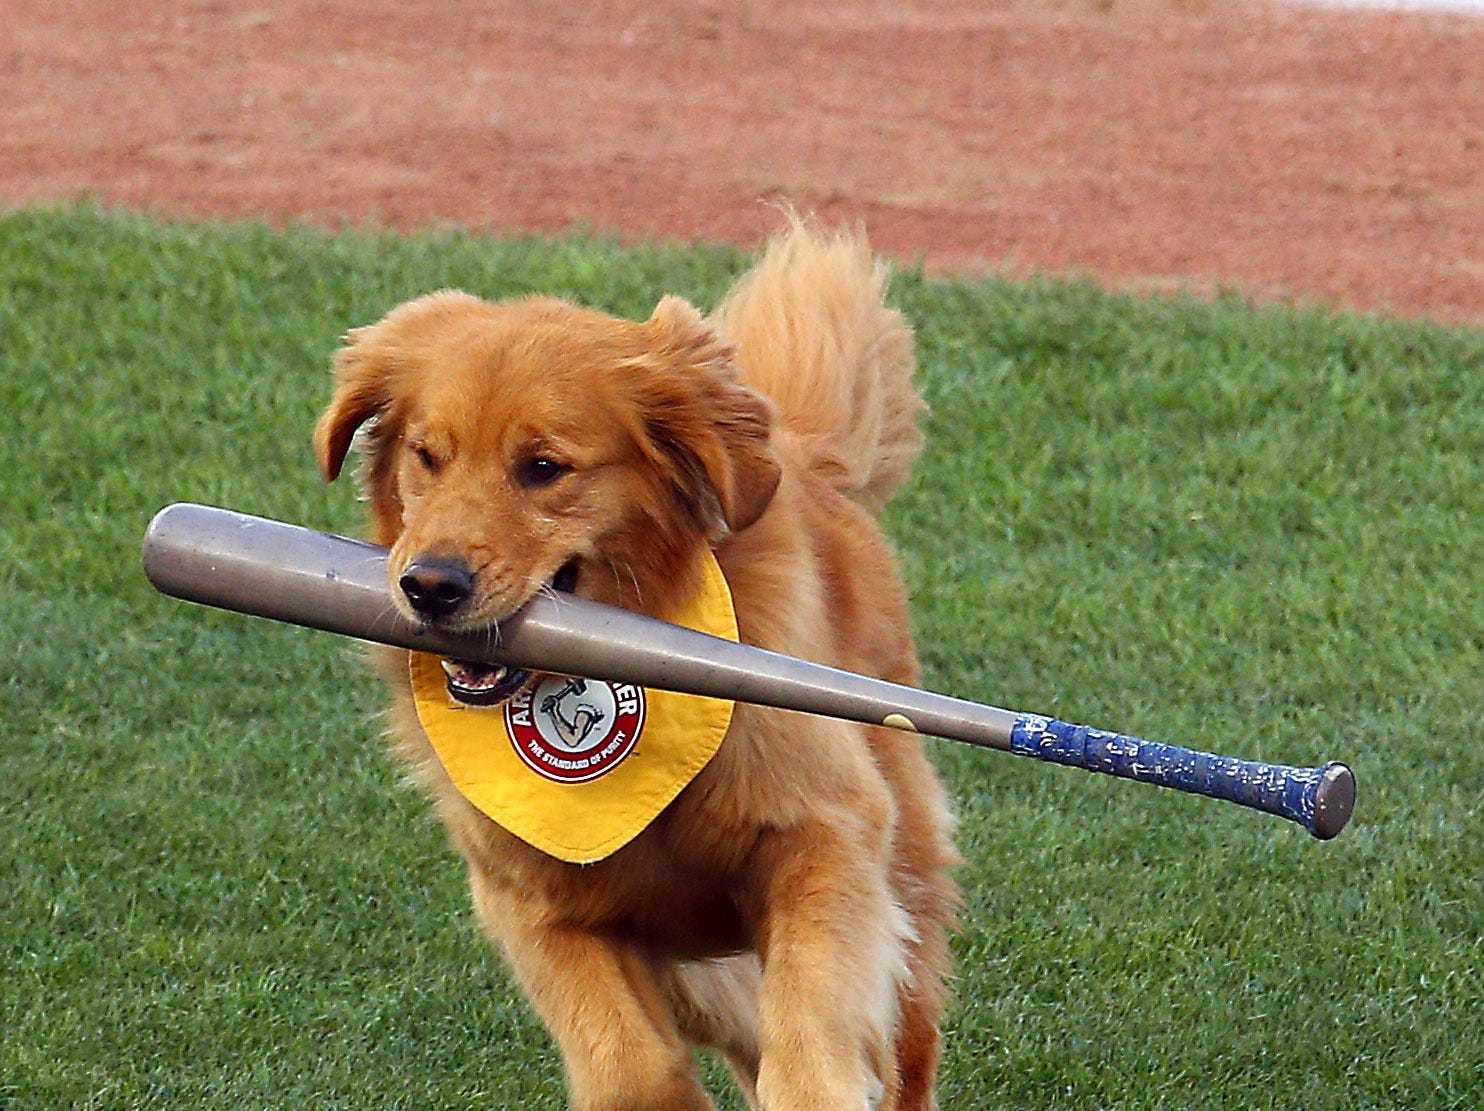 Third generation Trenton Thunder Bat Dog, Rookie retrieves a bat in the first inning as the Thunder hosted the 2018 Eastern League All-Star Classic at ARM & HAMMER Park in Trenton. July 11, 2018, Trenton, NJ.